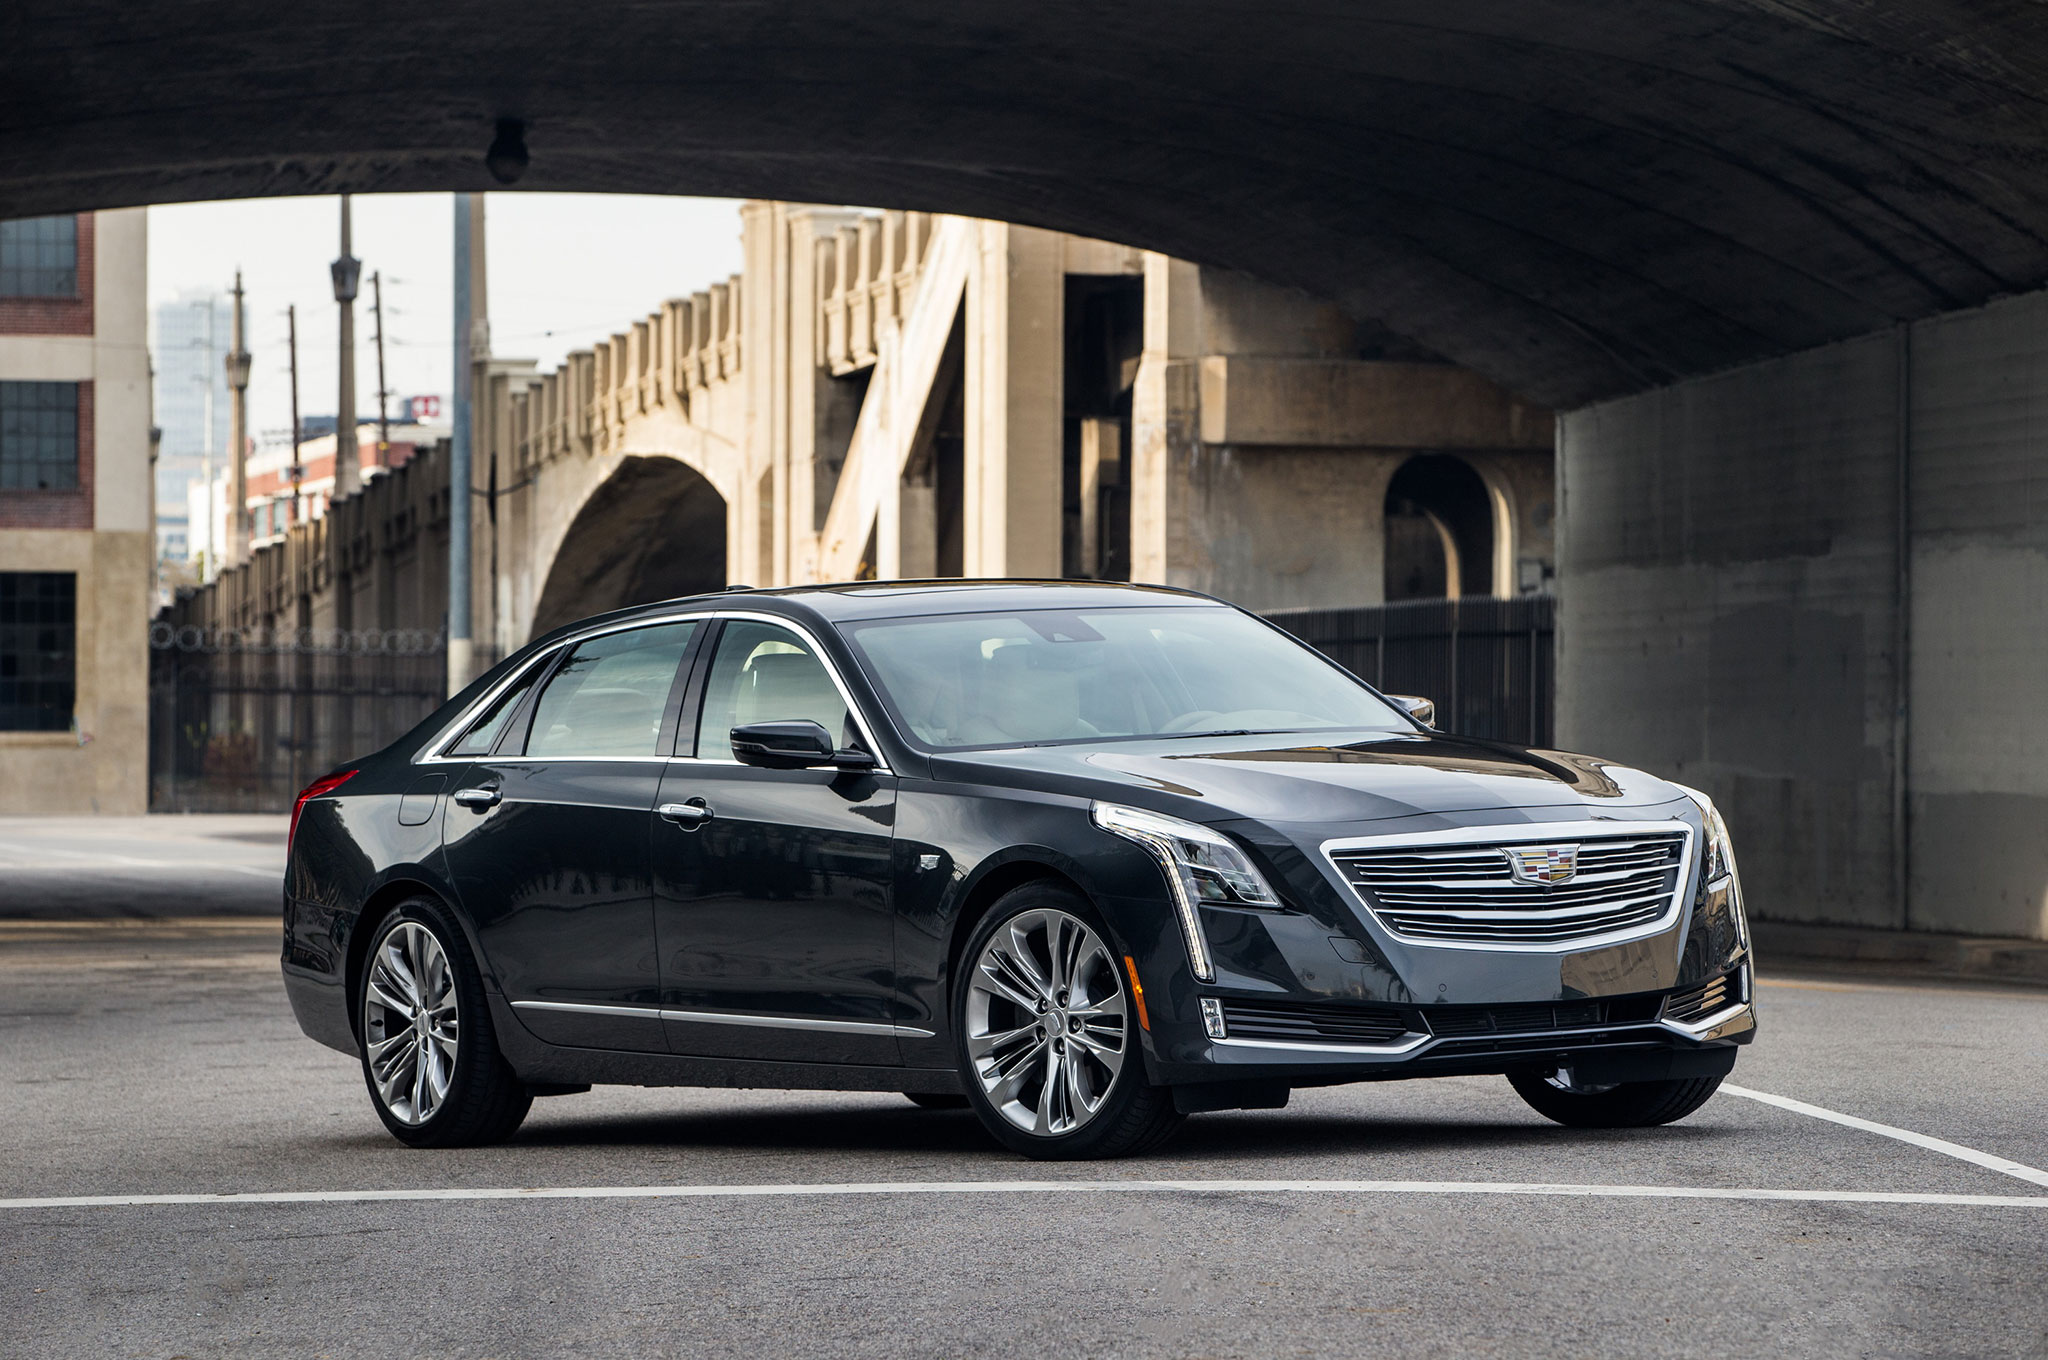 2016 cadillac ct6 review rh automobilemag com cadillac ct6 photo